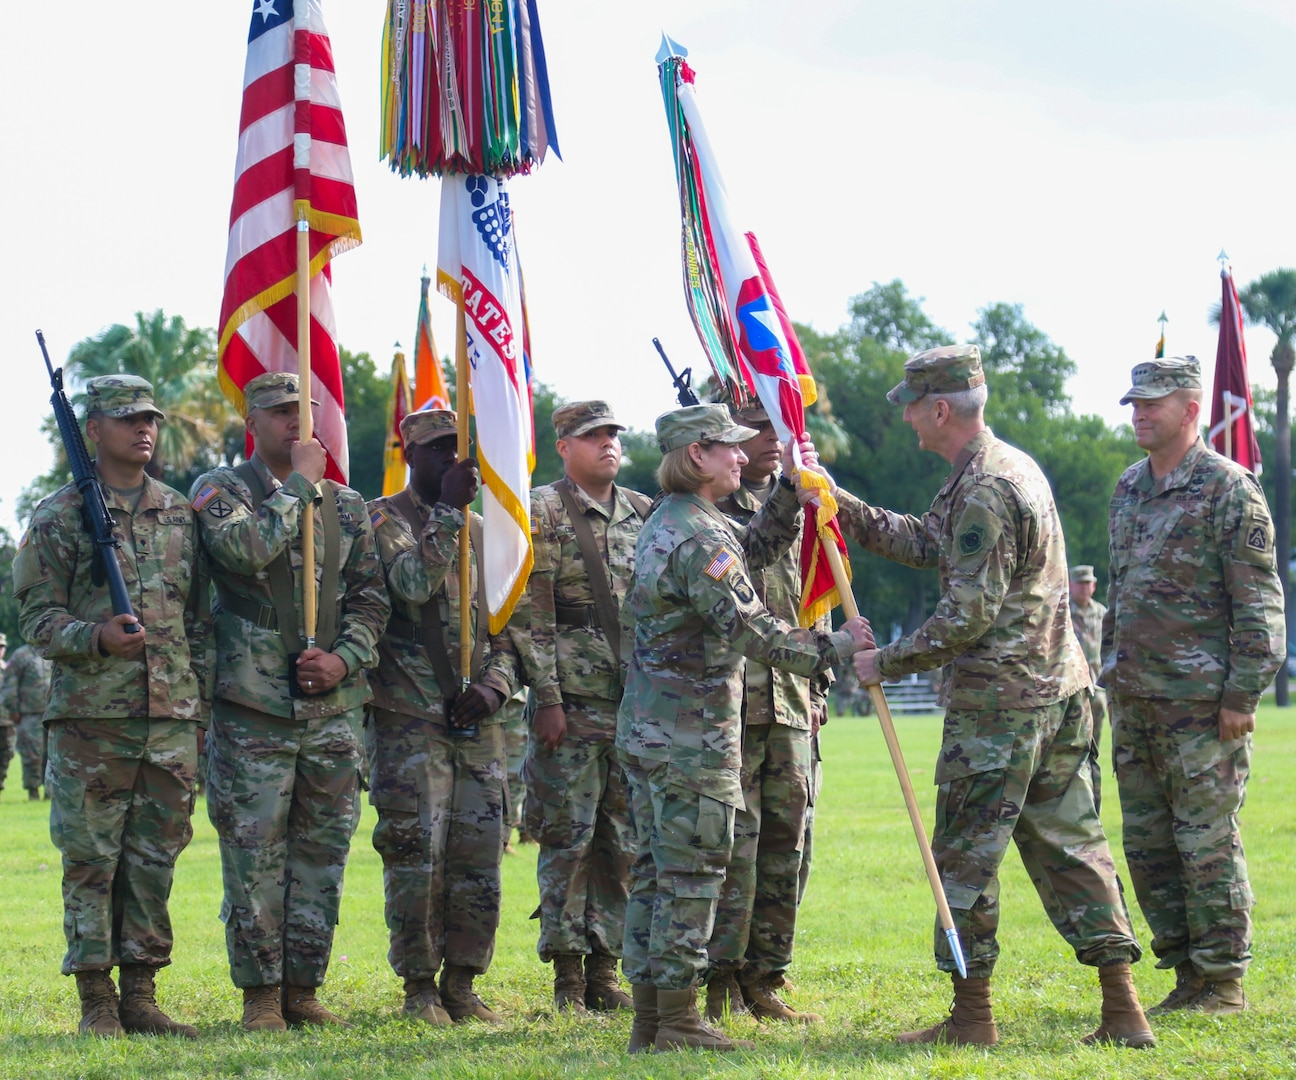 U.S. Army Lt. Gen. Laura J. Richardson, incoming U.S. Army North commander, accepts the Army North (Fifth Army) colors from U.S. Air Force Gen. Terrence J. O'Shaughnessy, commanding general, U.S. Northern Command, during the change of command ceremony at Joint Base San Antonio-Fort Sam Houston July 8. Richardson most recently served at U.S. Army Forces Command at Fort Bragg, North Carolina, where she was the deputy commanding general.